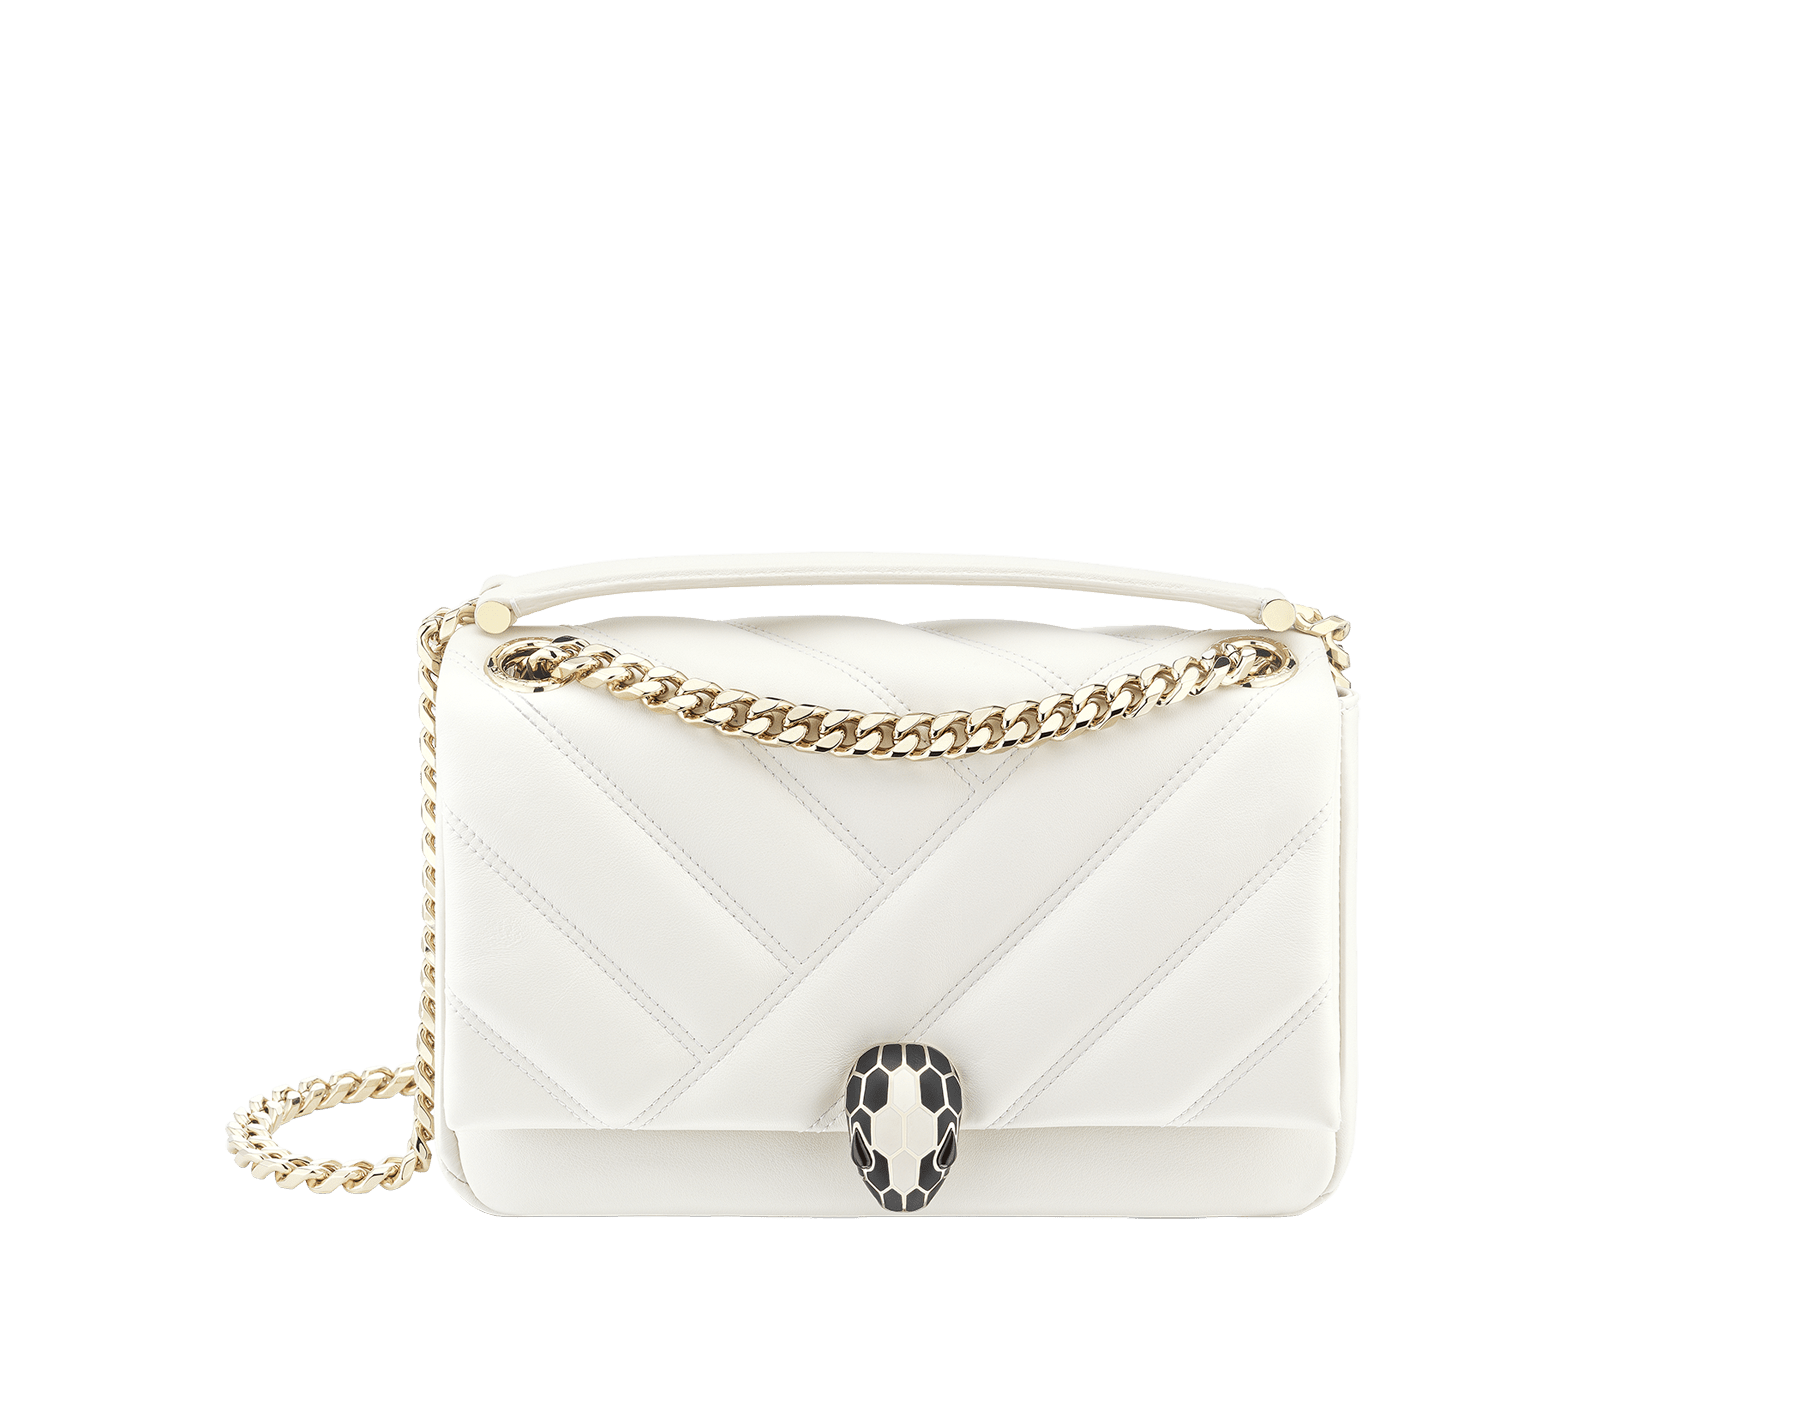 Serpenti Cabochon shoulder bag in soft matelassé white agate nappa leather with graphic motif and white agate calf leather. Snakehead closure in rose gold plated brass decorated with matte black and white enamel, and black onyx eyes. 287993 image 1